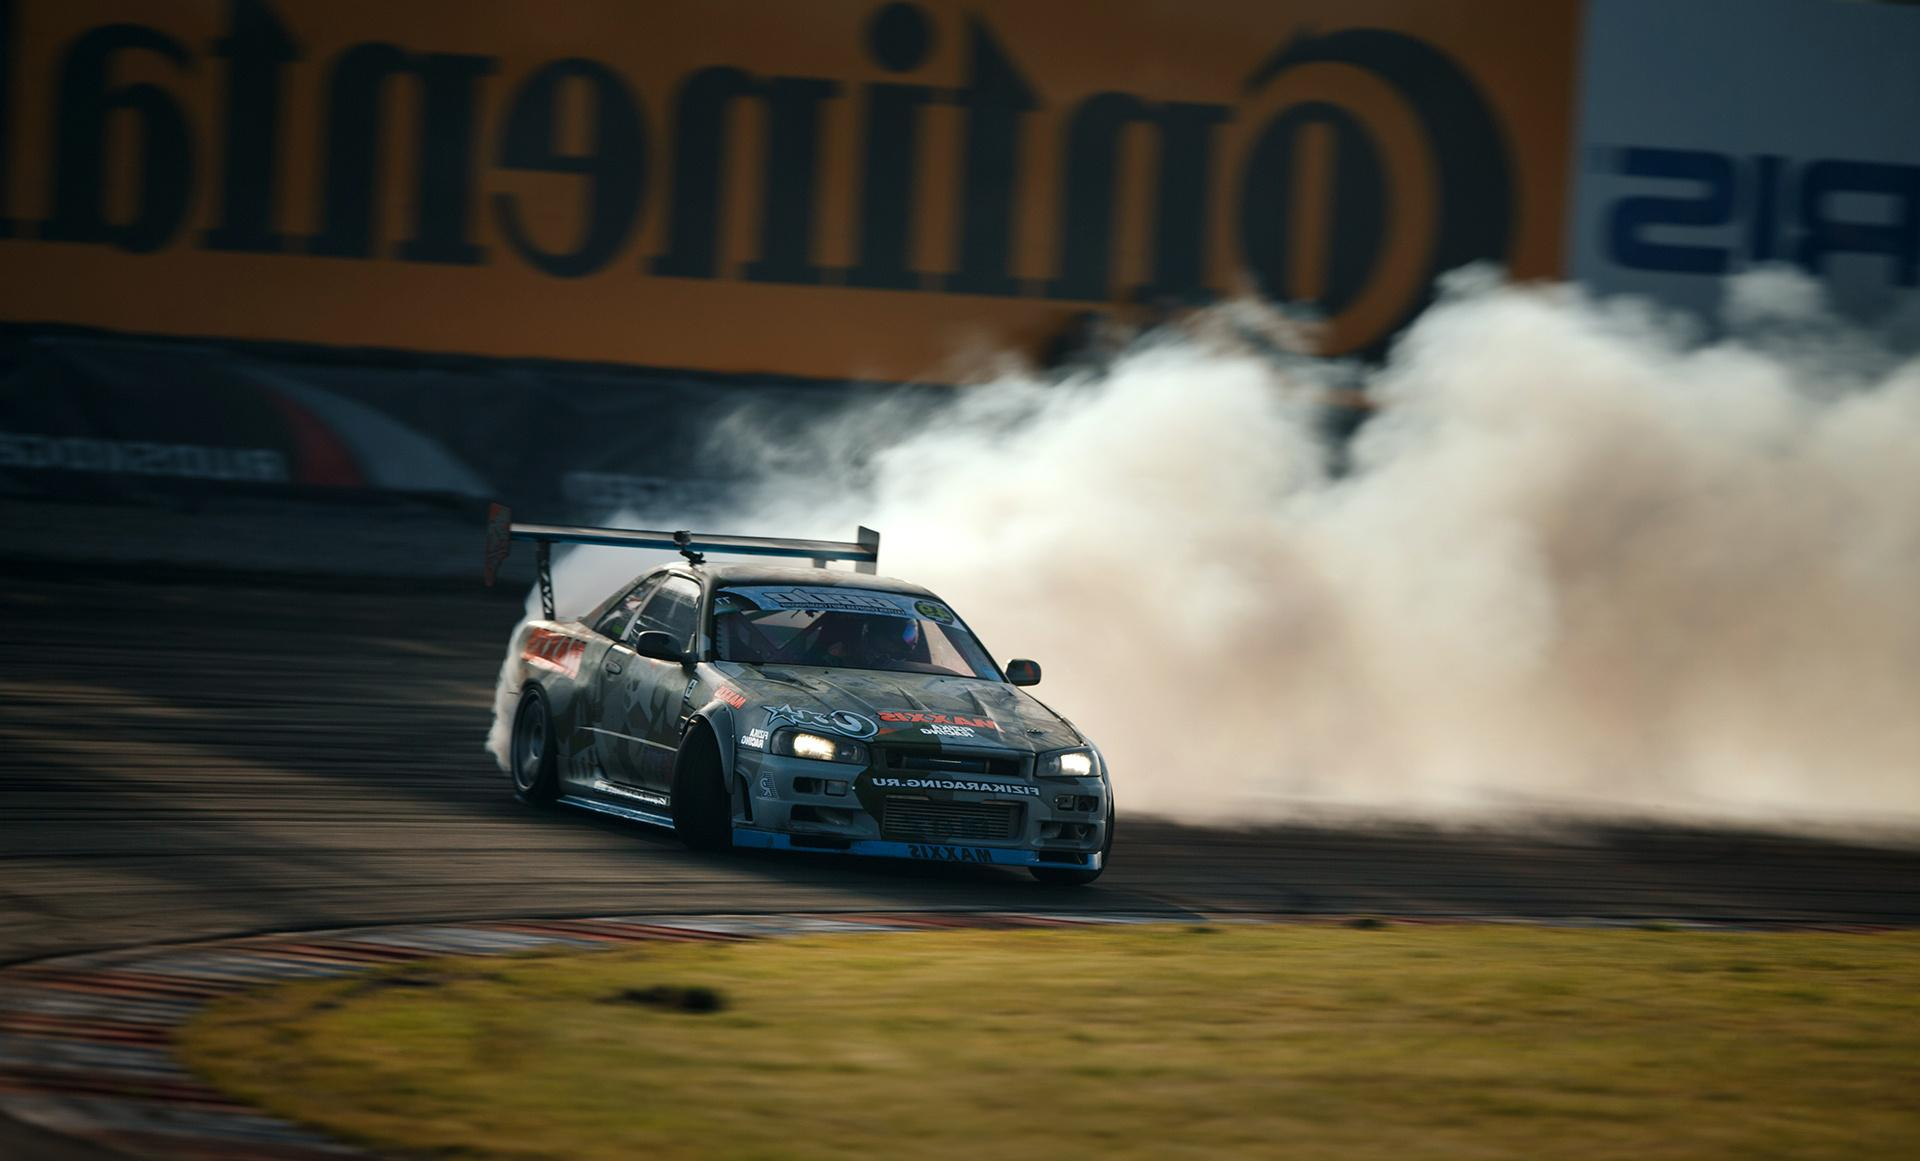 Benz Drift Car >> I got a question that may be stupid. Can you drift and ...